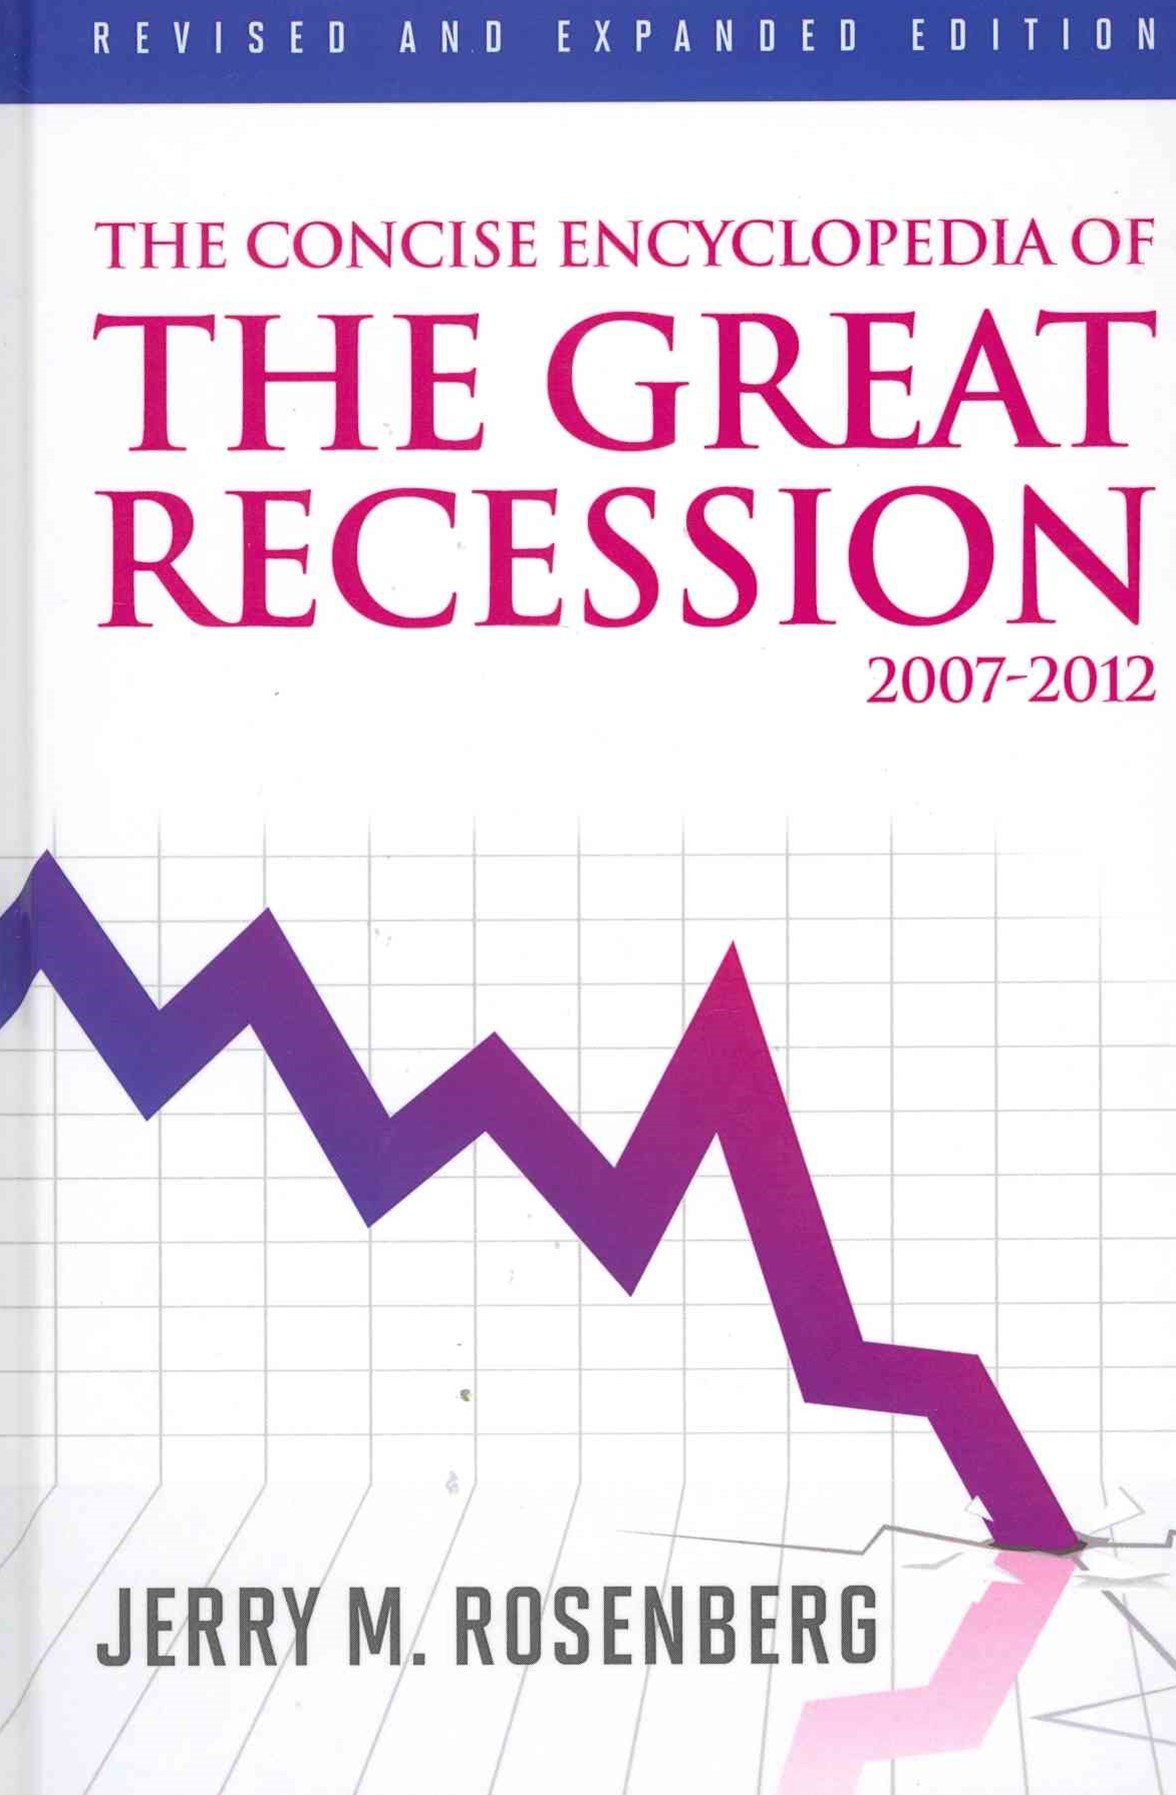 The Concise Encyclopedia of the Great Recession, 2007-2012